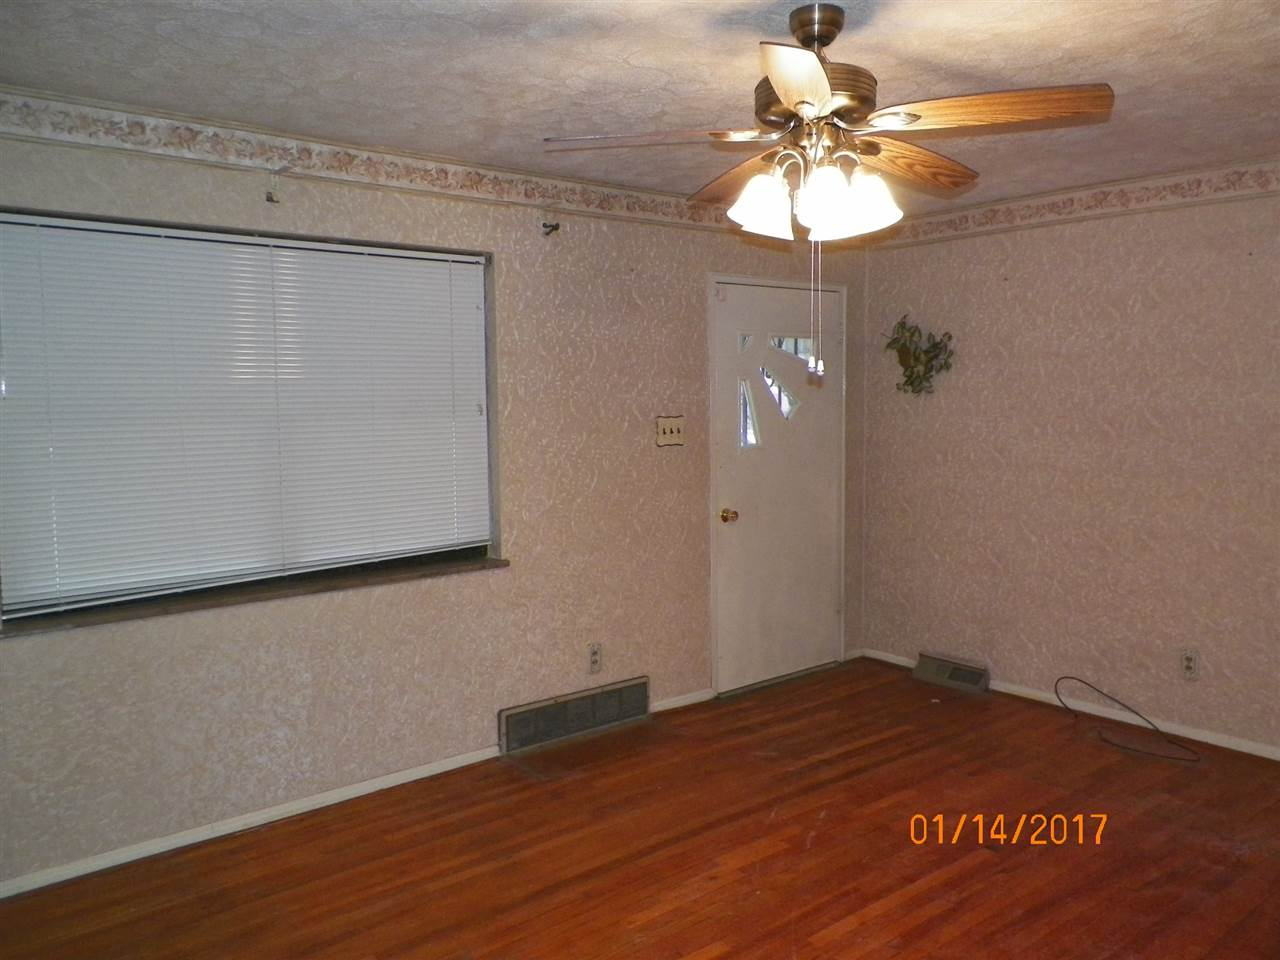 real estate photo 1 for 15 Janet Dr Taylor Mill, KY 41015